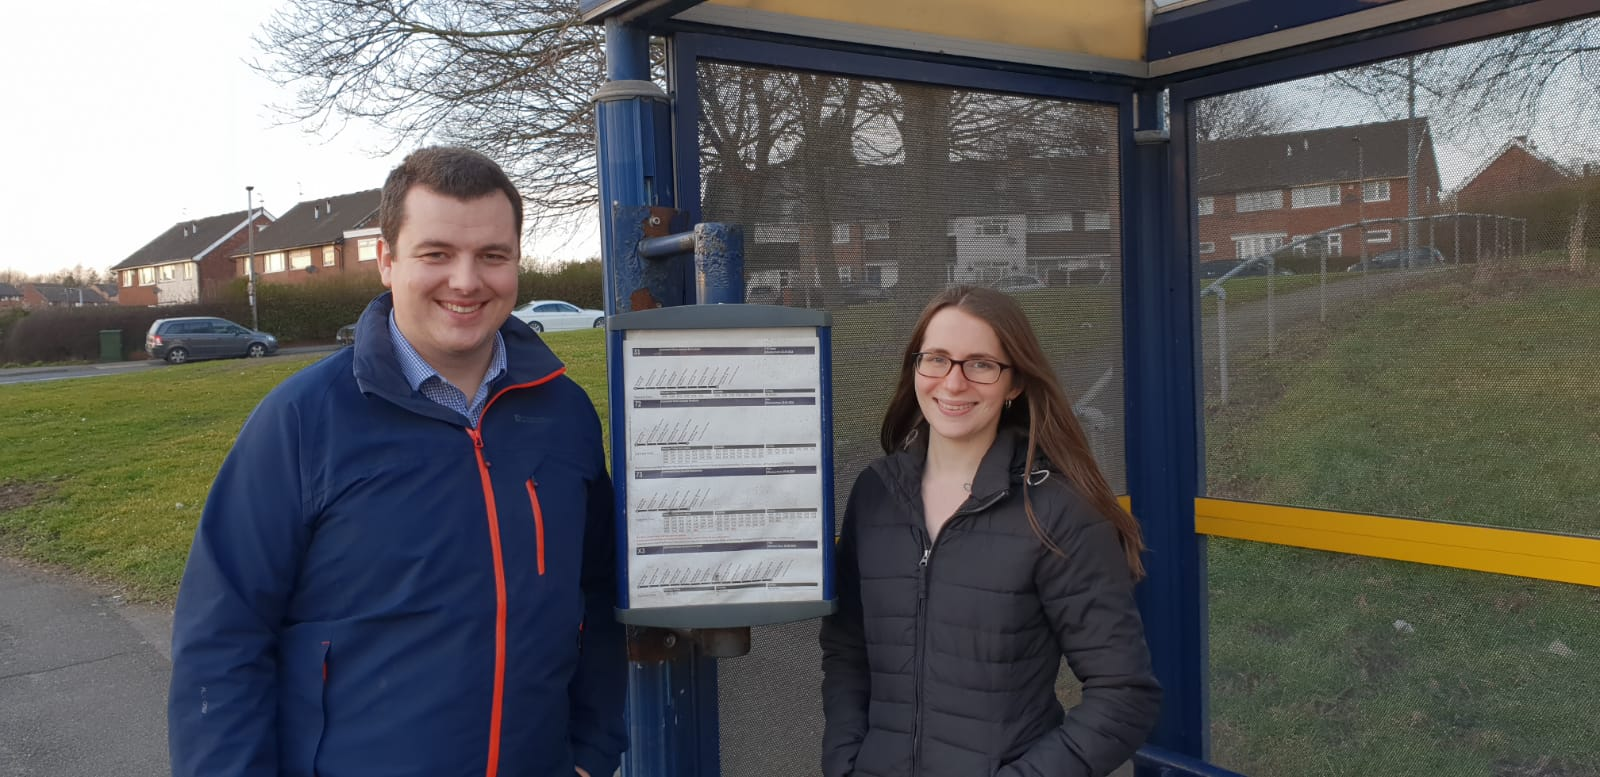 Lib Dems Adam and Charlotte Carter are campaigning to improve the buses